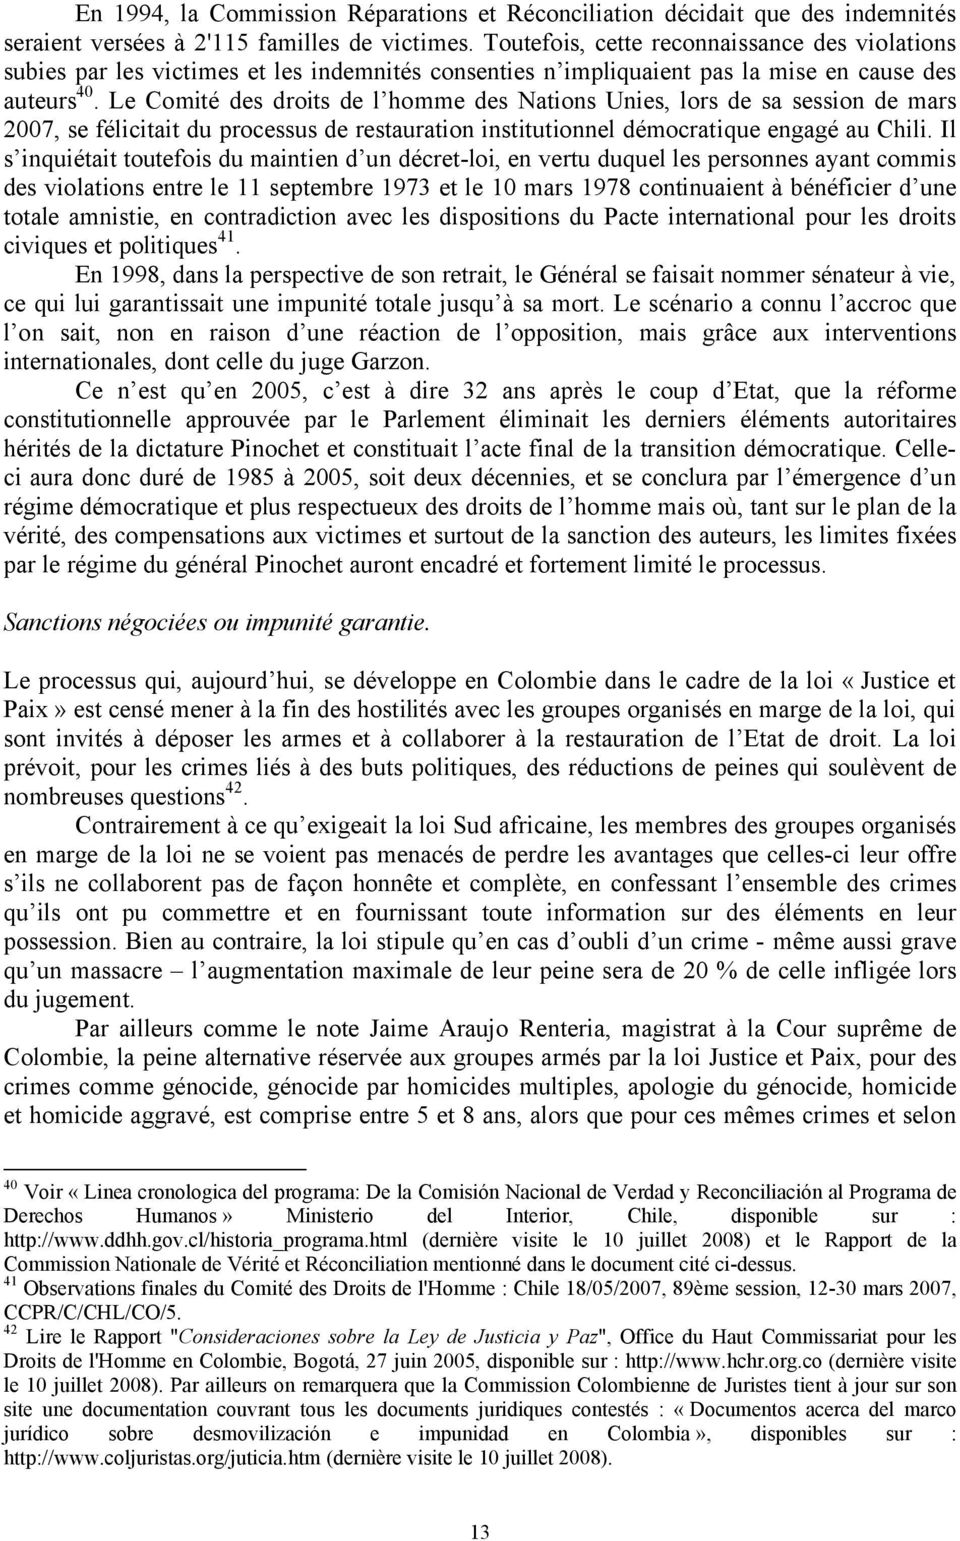 Le Comité des droits de l homme des Nations Unies, lors de sa session de mars 2007, se félicitait du processus de restauration institutionnel démocratique engagé au Chili.